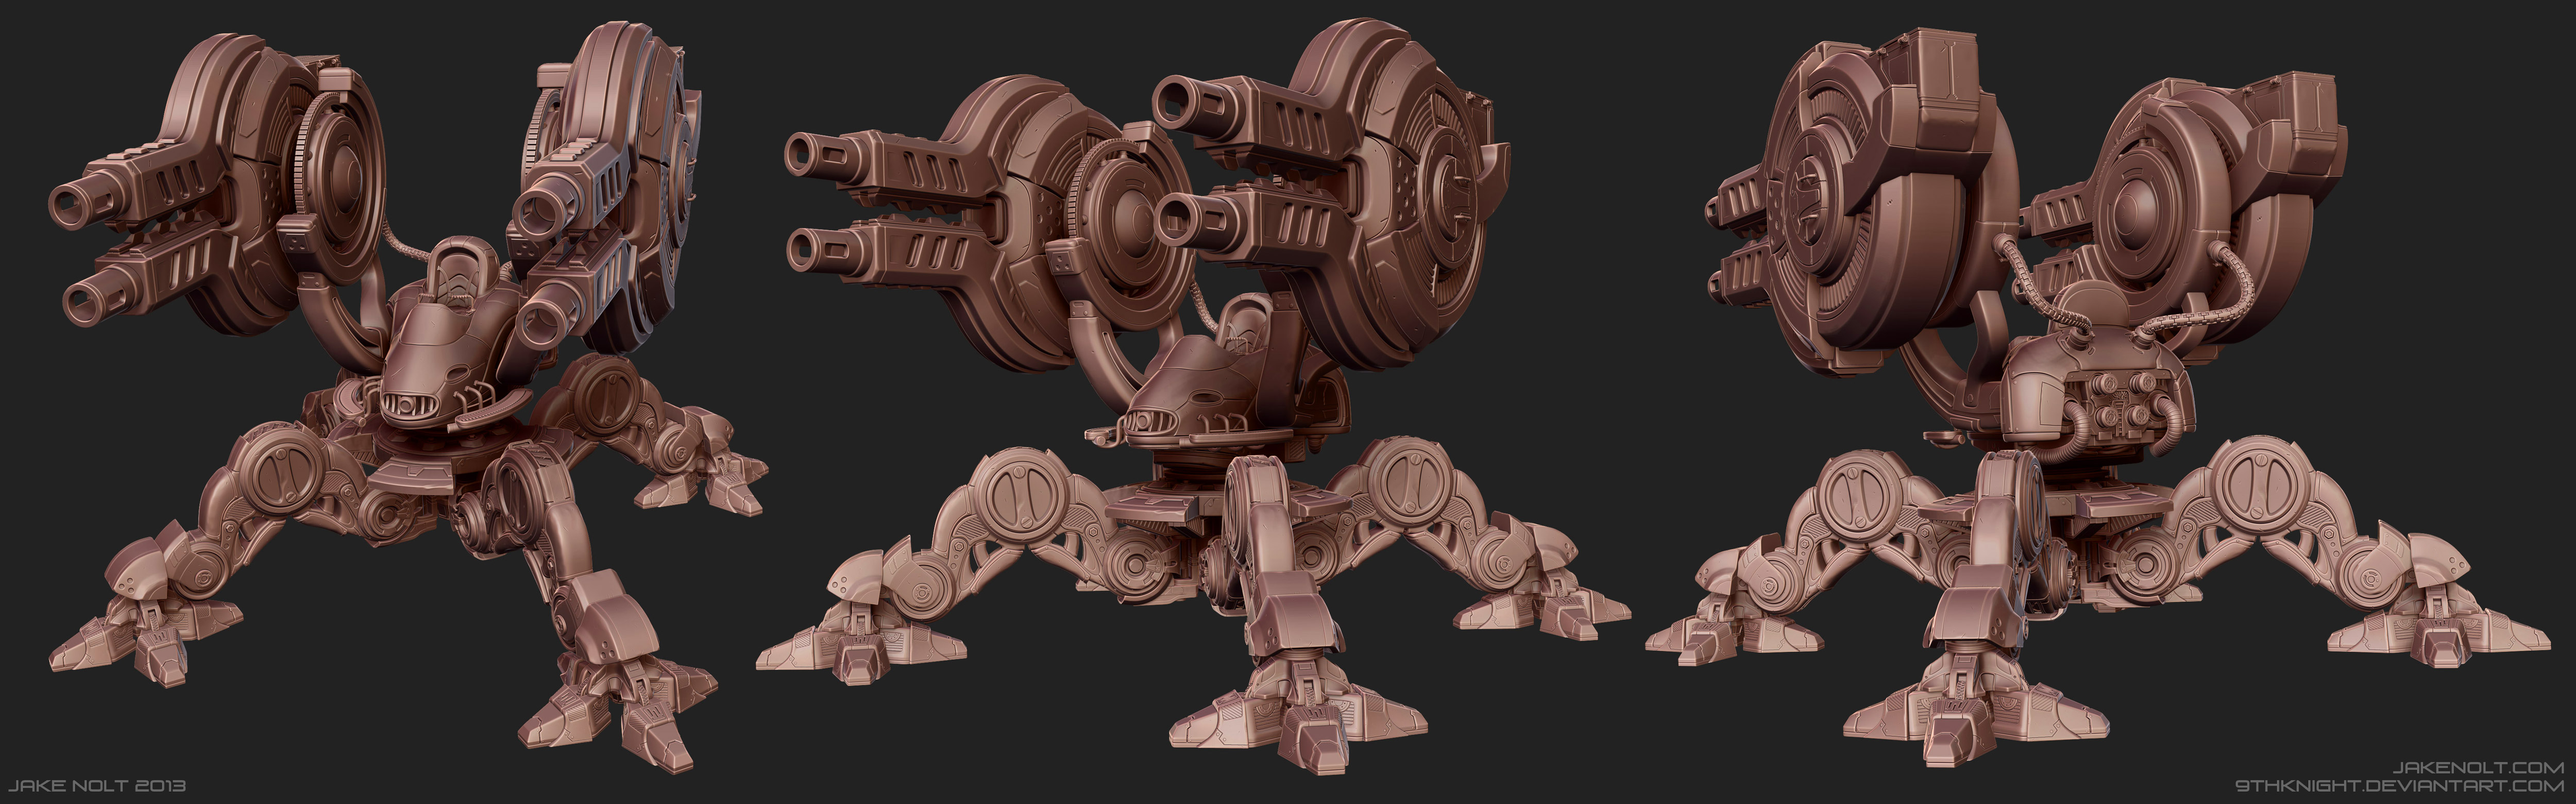 turret_highpoly2_by_9thknight-d63mxmi.jpg